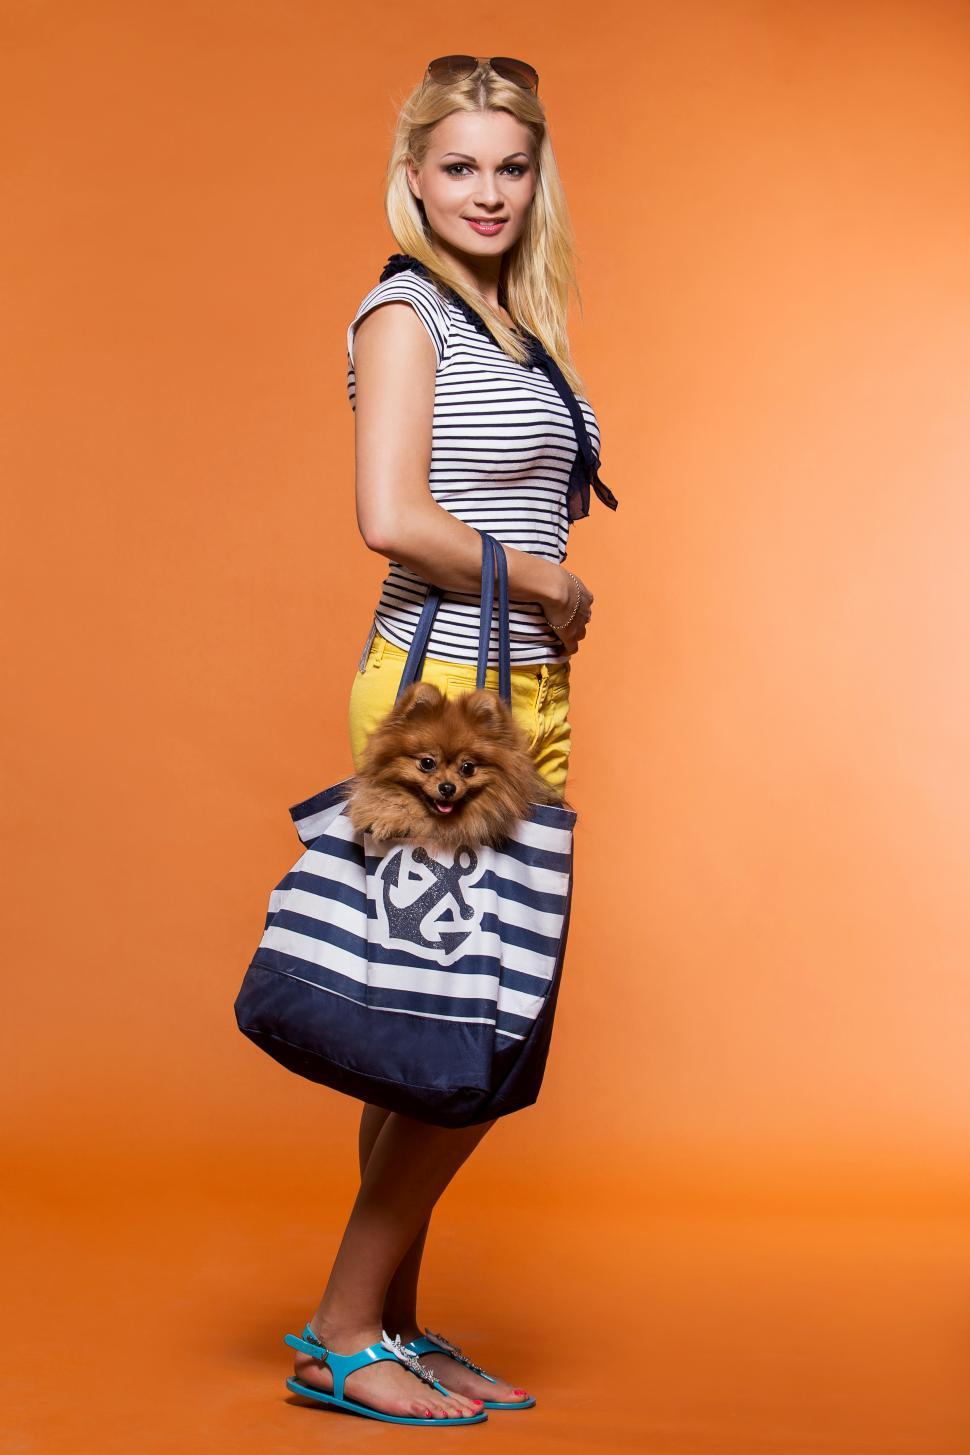 Download Free Stock HD Photo of Summer. Beautiful blonde standing with dog in large bag Online